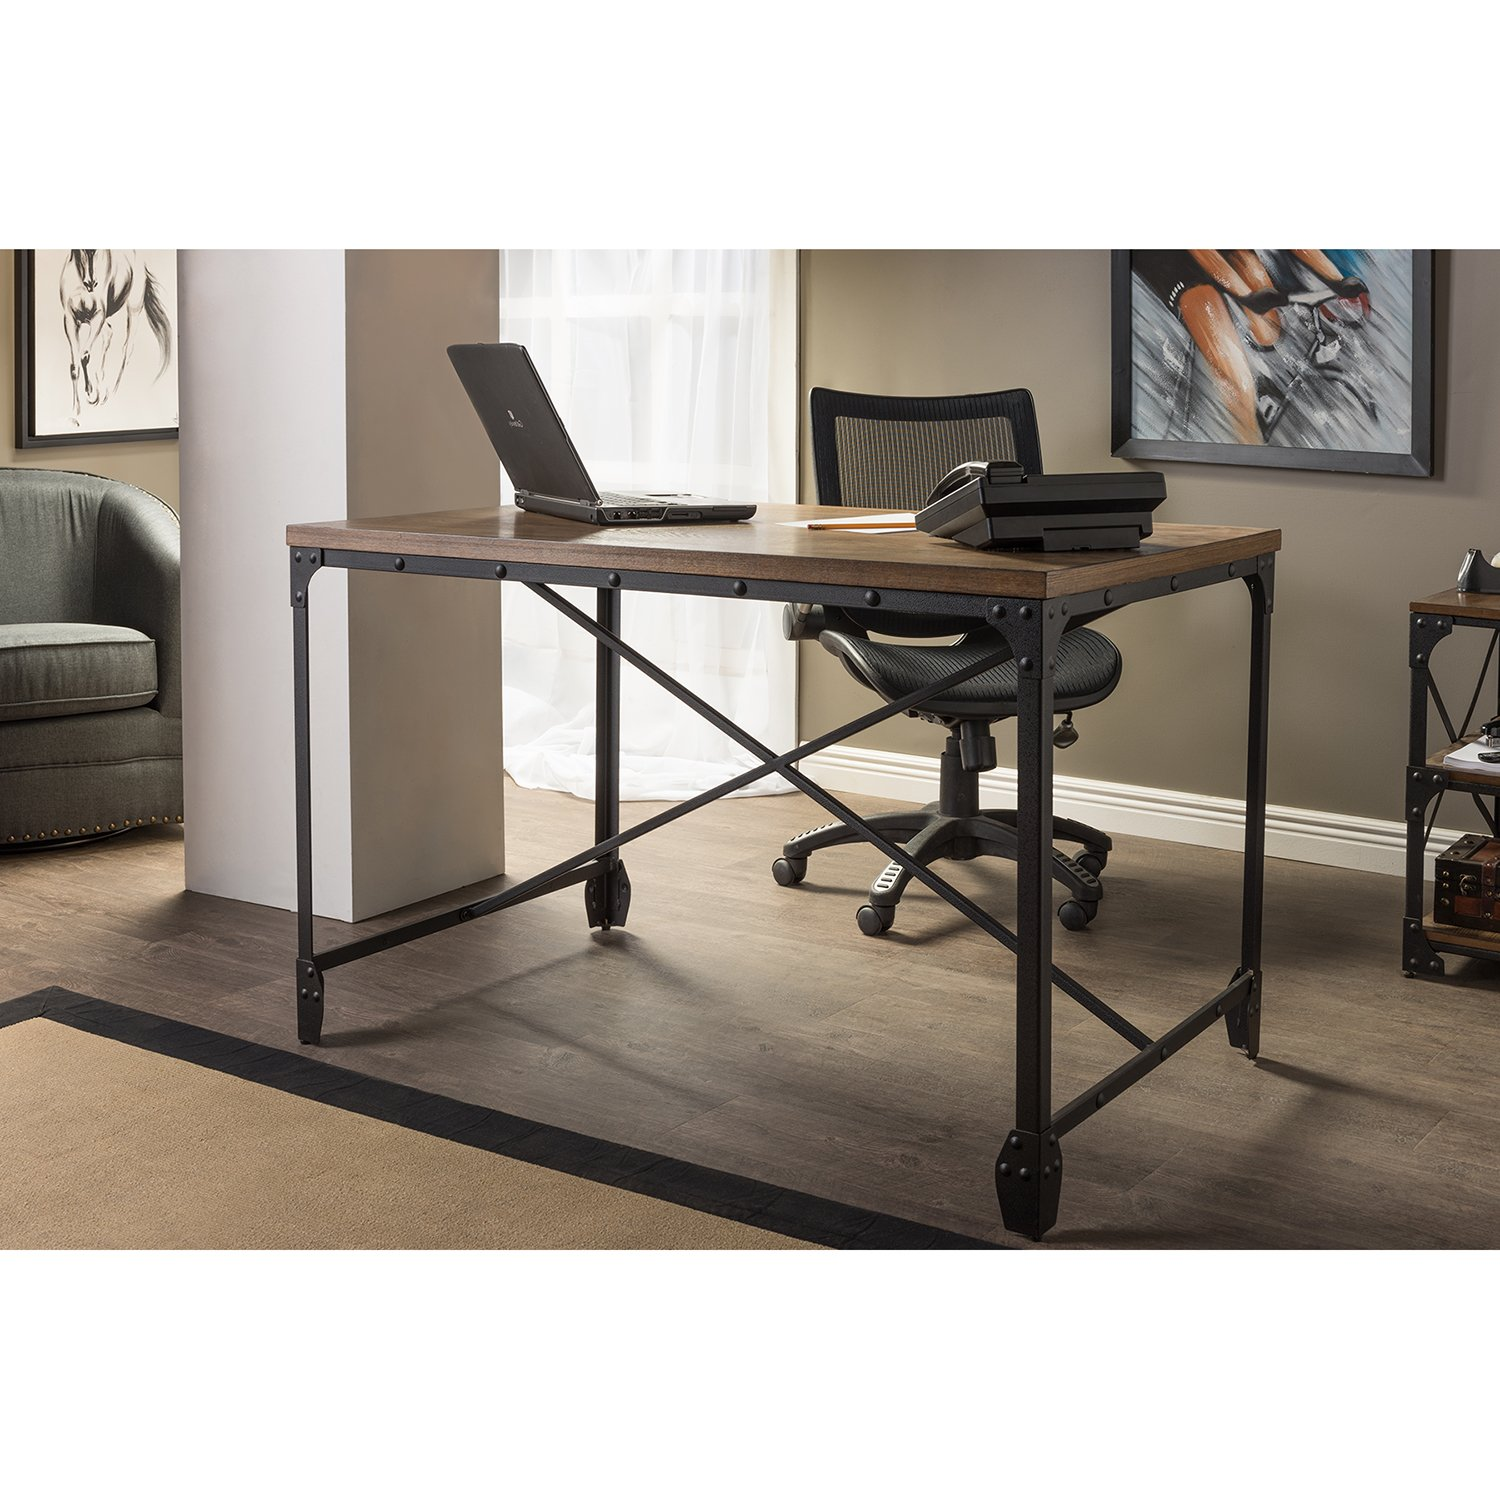 Amazon.com: Baxton Studio Wholesale Interiors Greyson Vintage Industrial Home  Office Wood Desk, Antique Bronze: Kitchen U0026 Dining